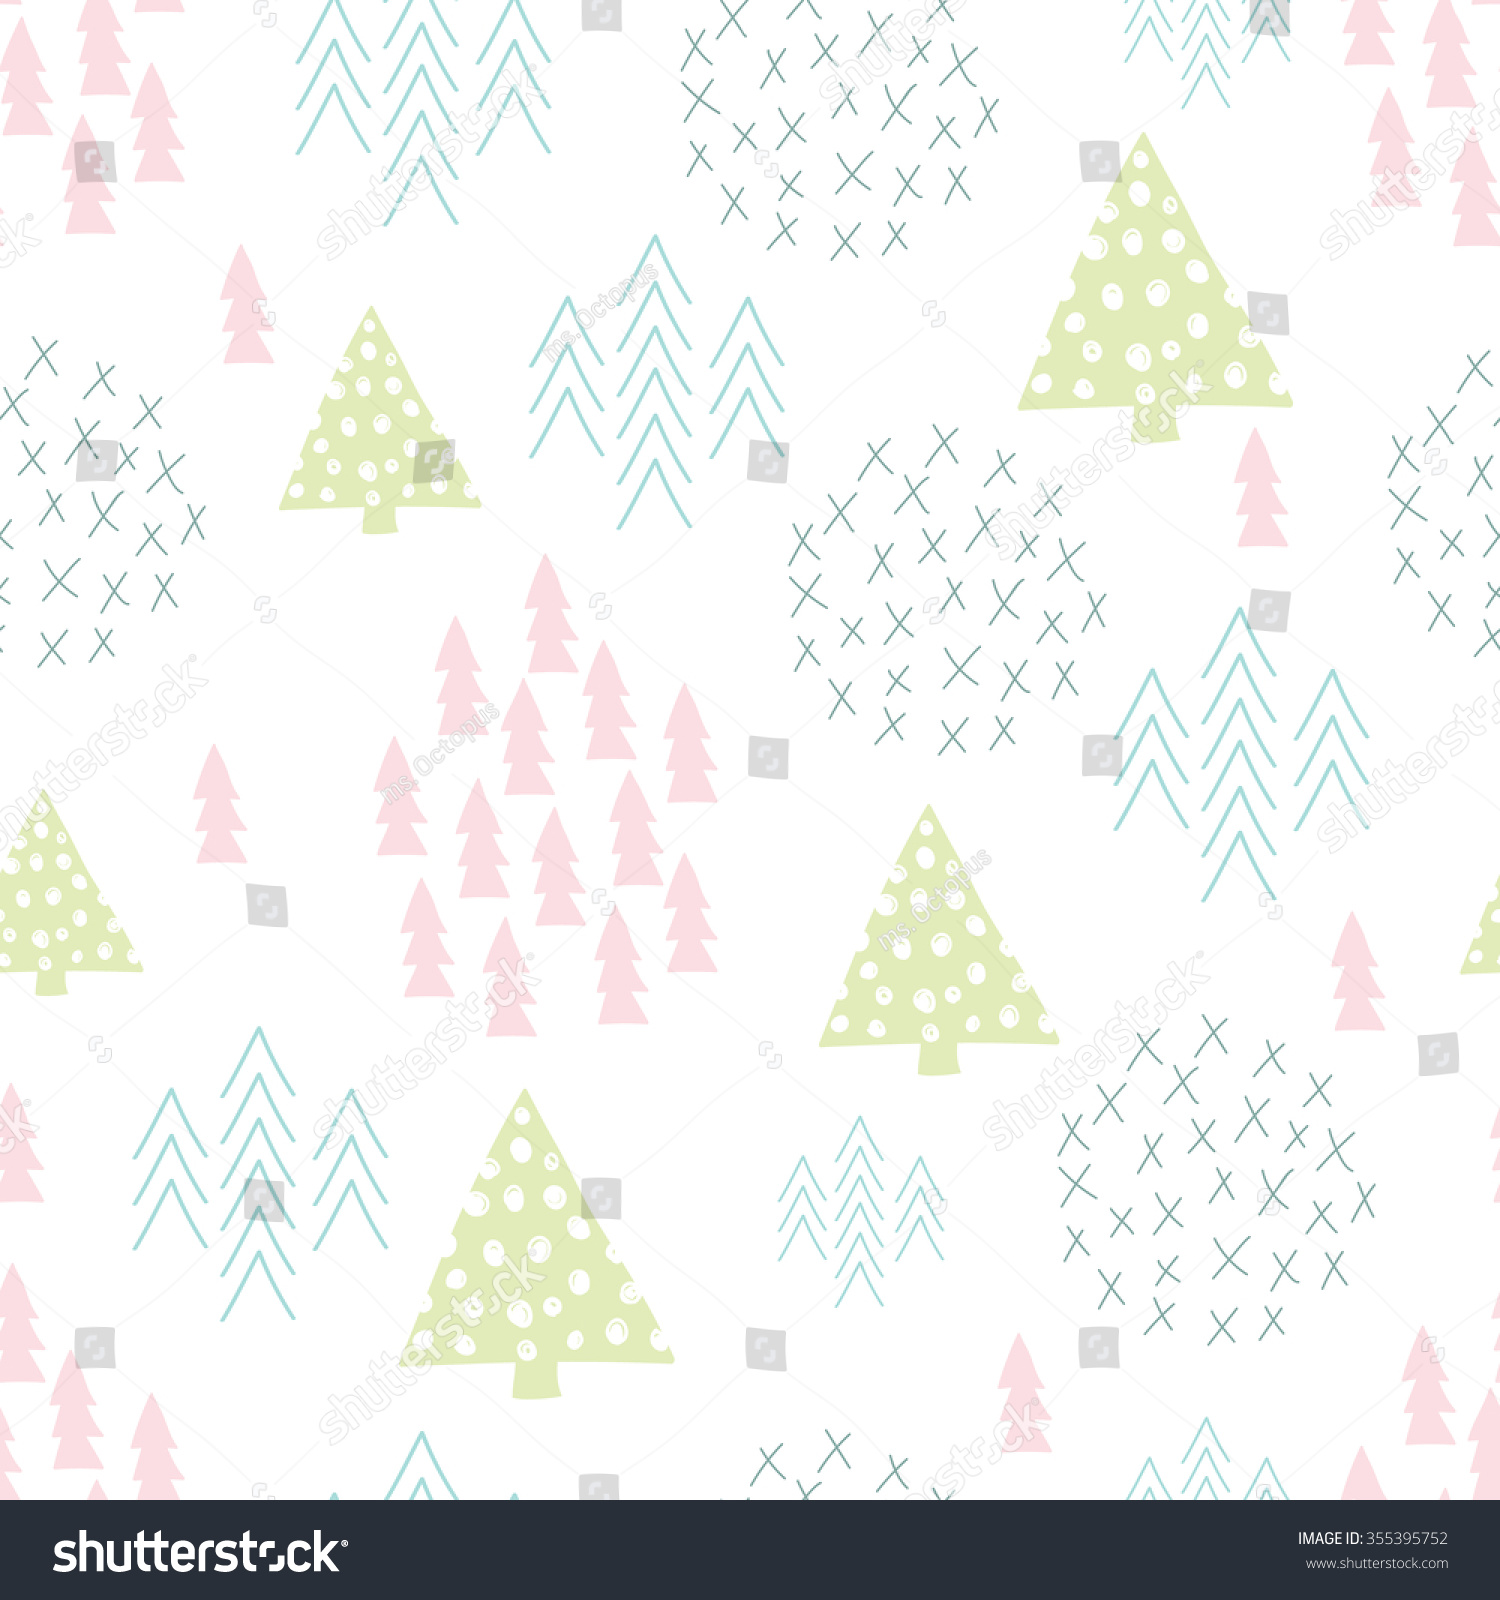 Seamless fir tree scandinavian pattern textile background wrapping - Seamless Scandinavian Style Simple Illustration Christmas Tree Theme Background